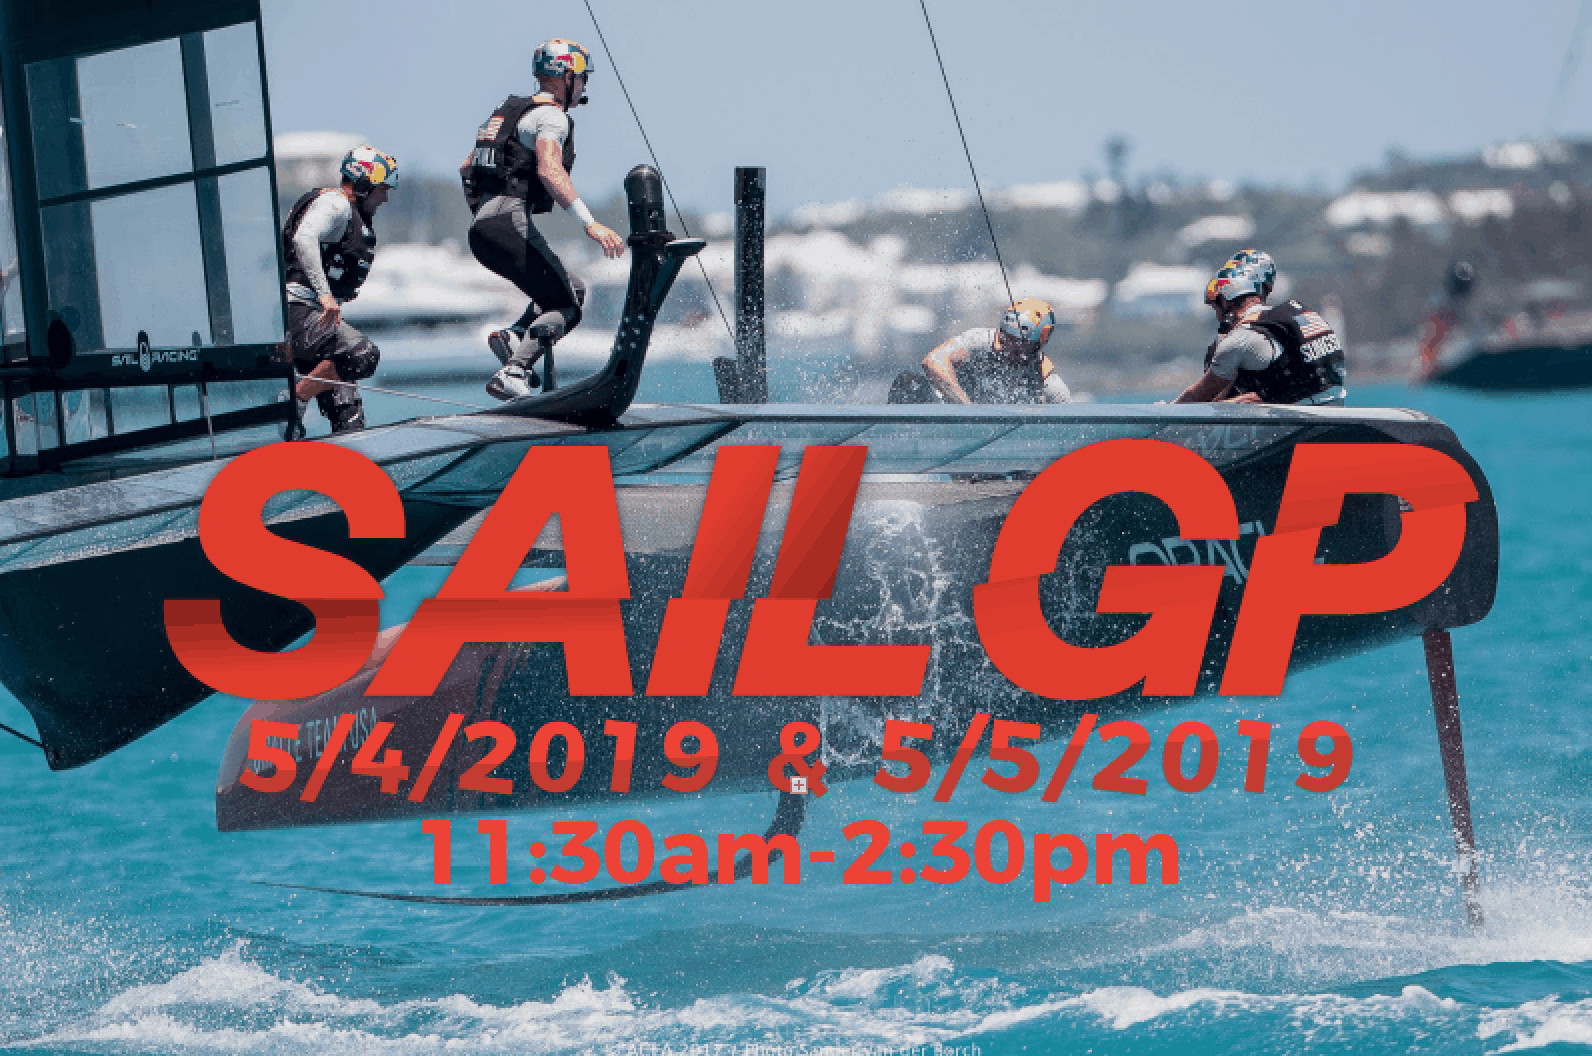 promotional graphic for the SAIL GP special sail on May 4 and 5